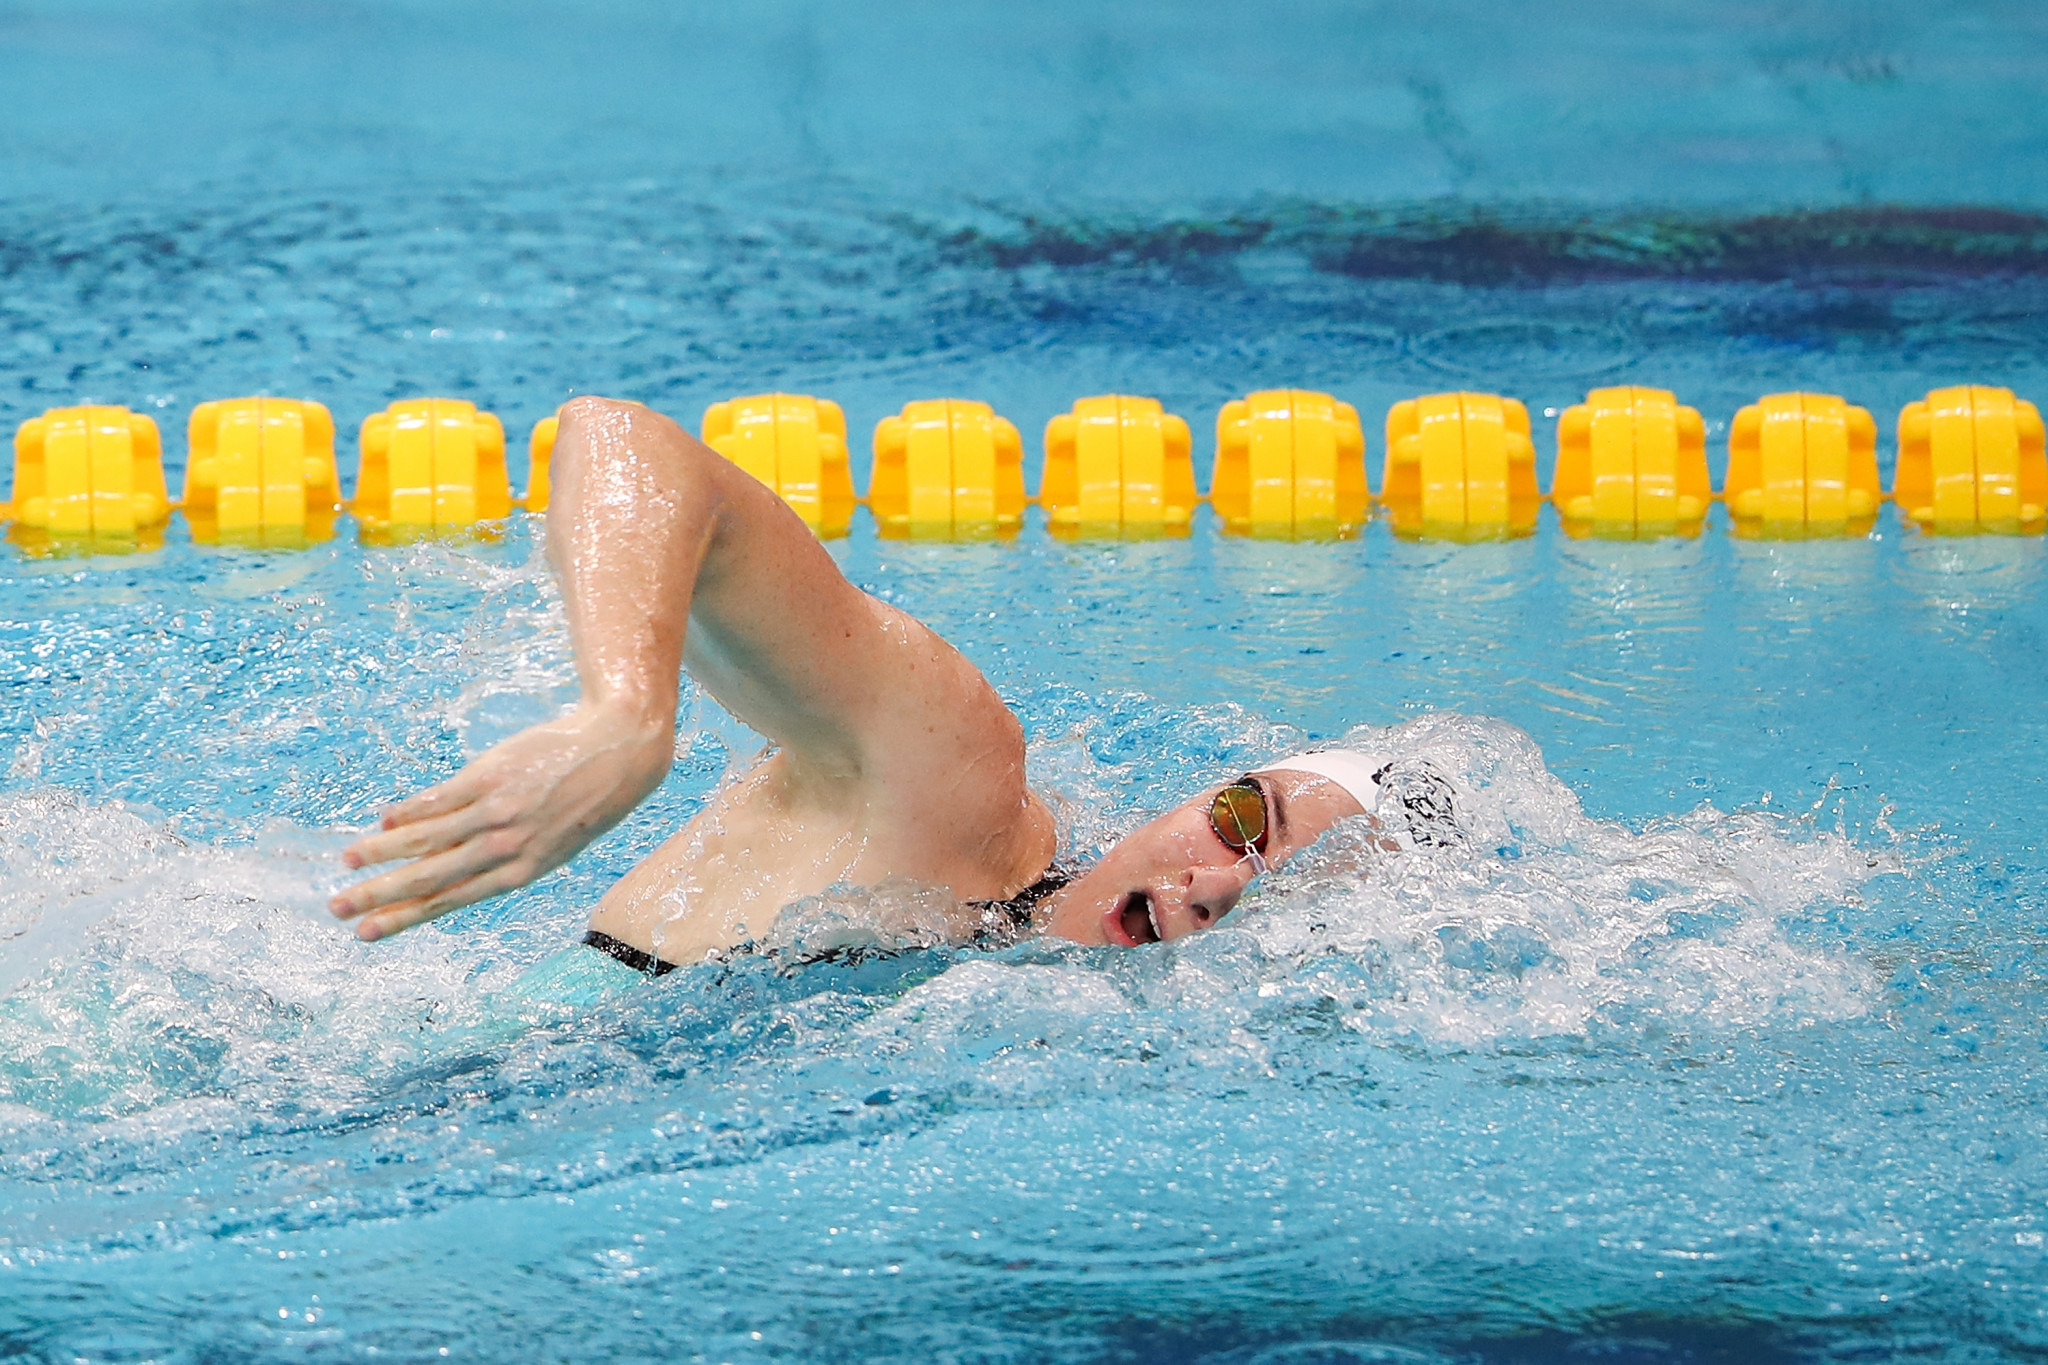 Campbell claims fourth gold as Australians dominate at FINA Swimming World Cup